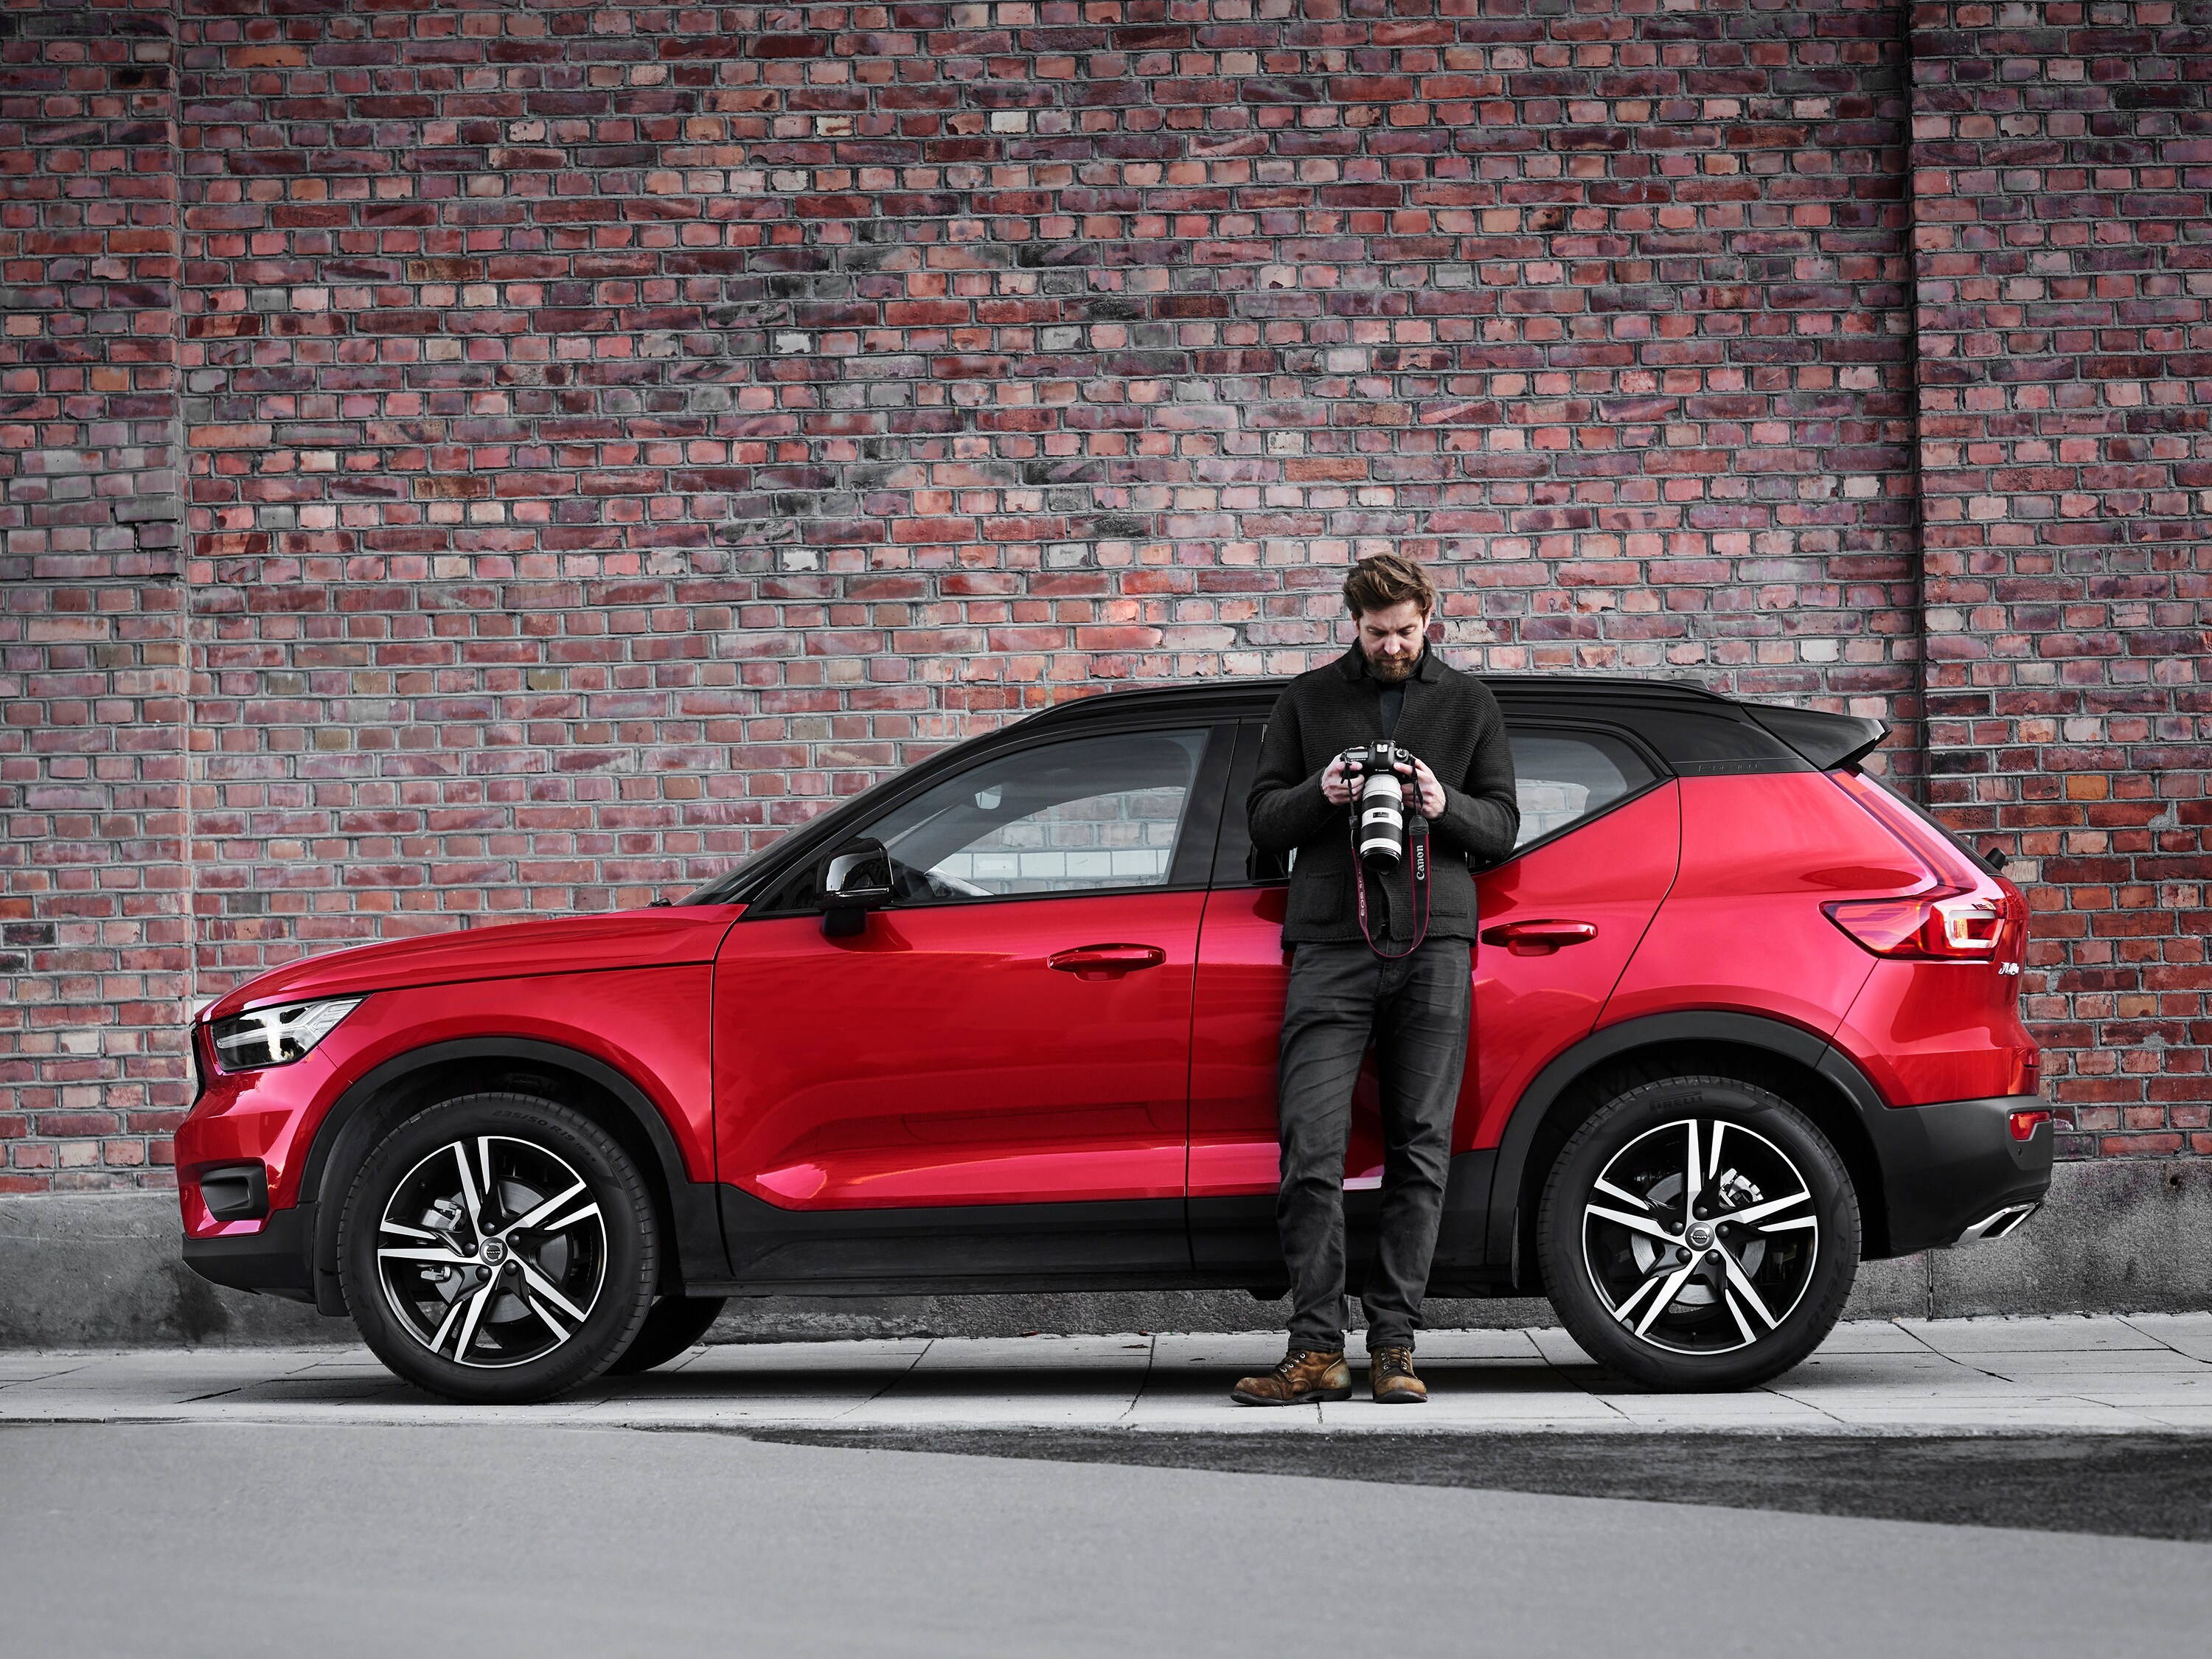 Photographer Sam Christmas leans against the side of a Volvo XC40 in Oslo, inspecting his camera